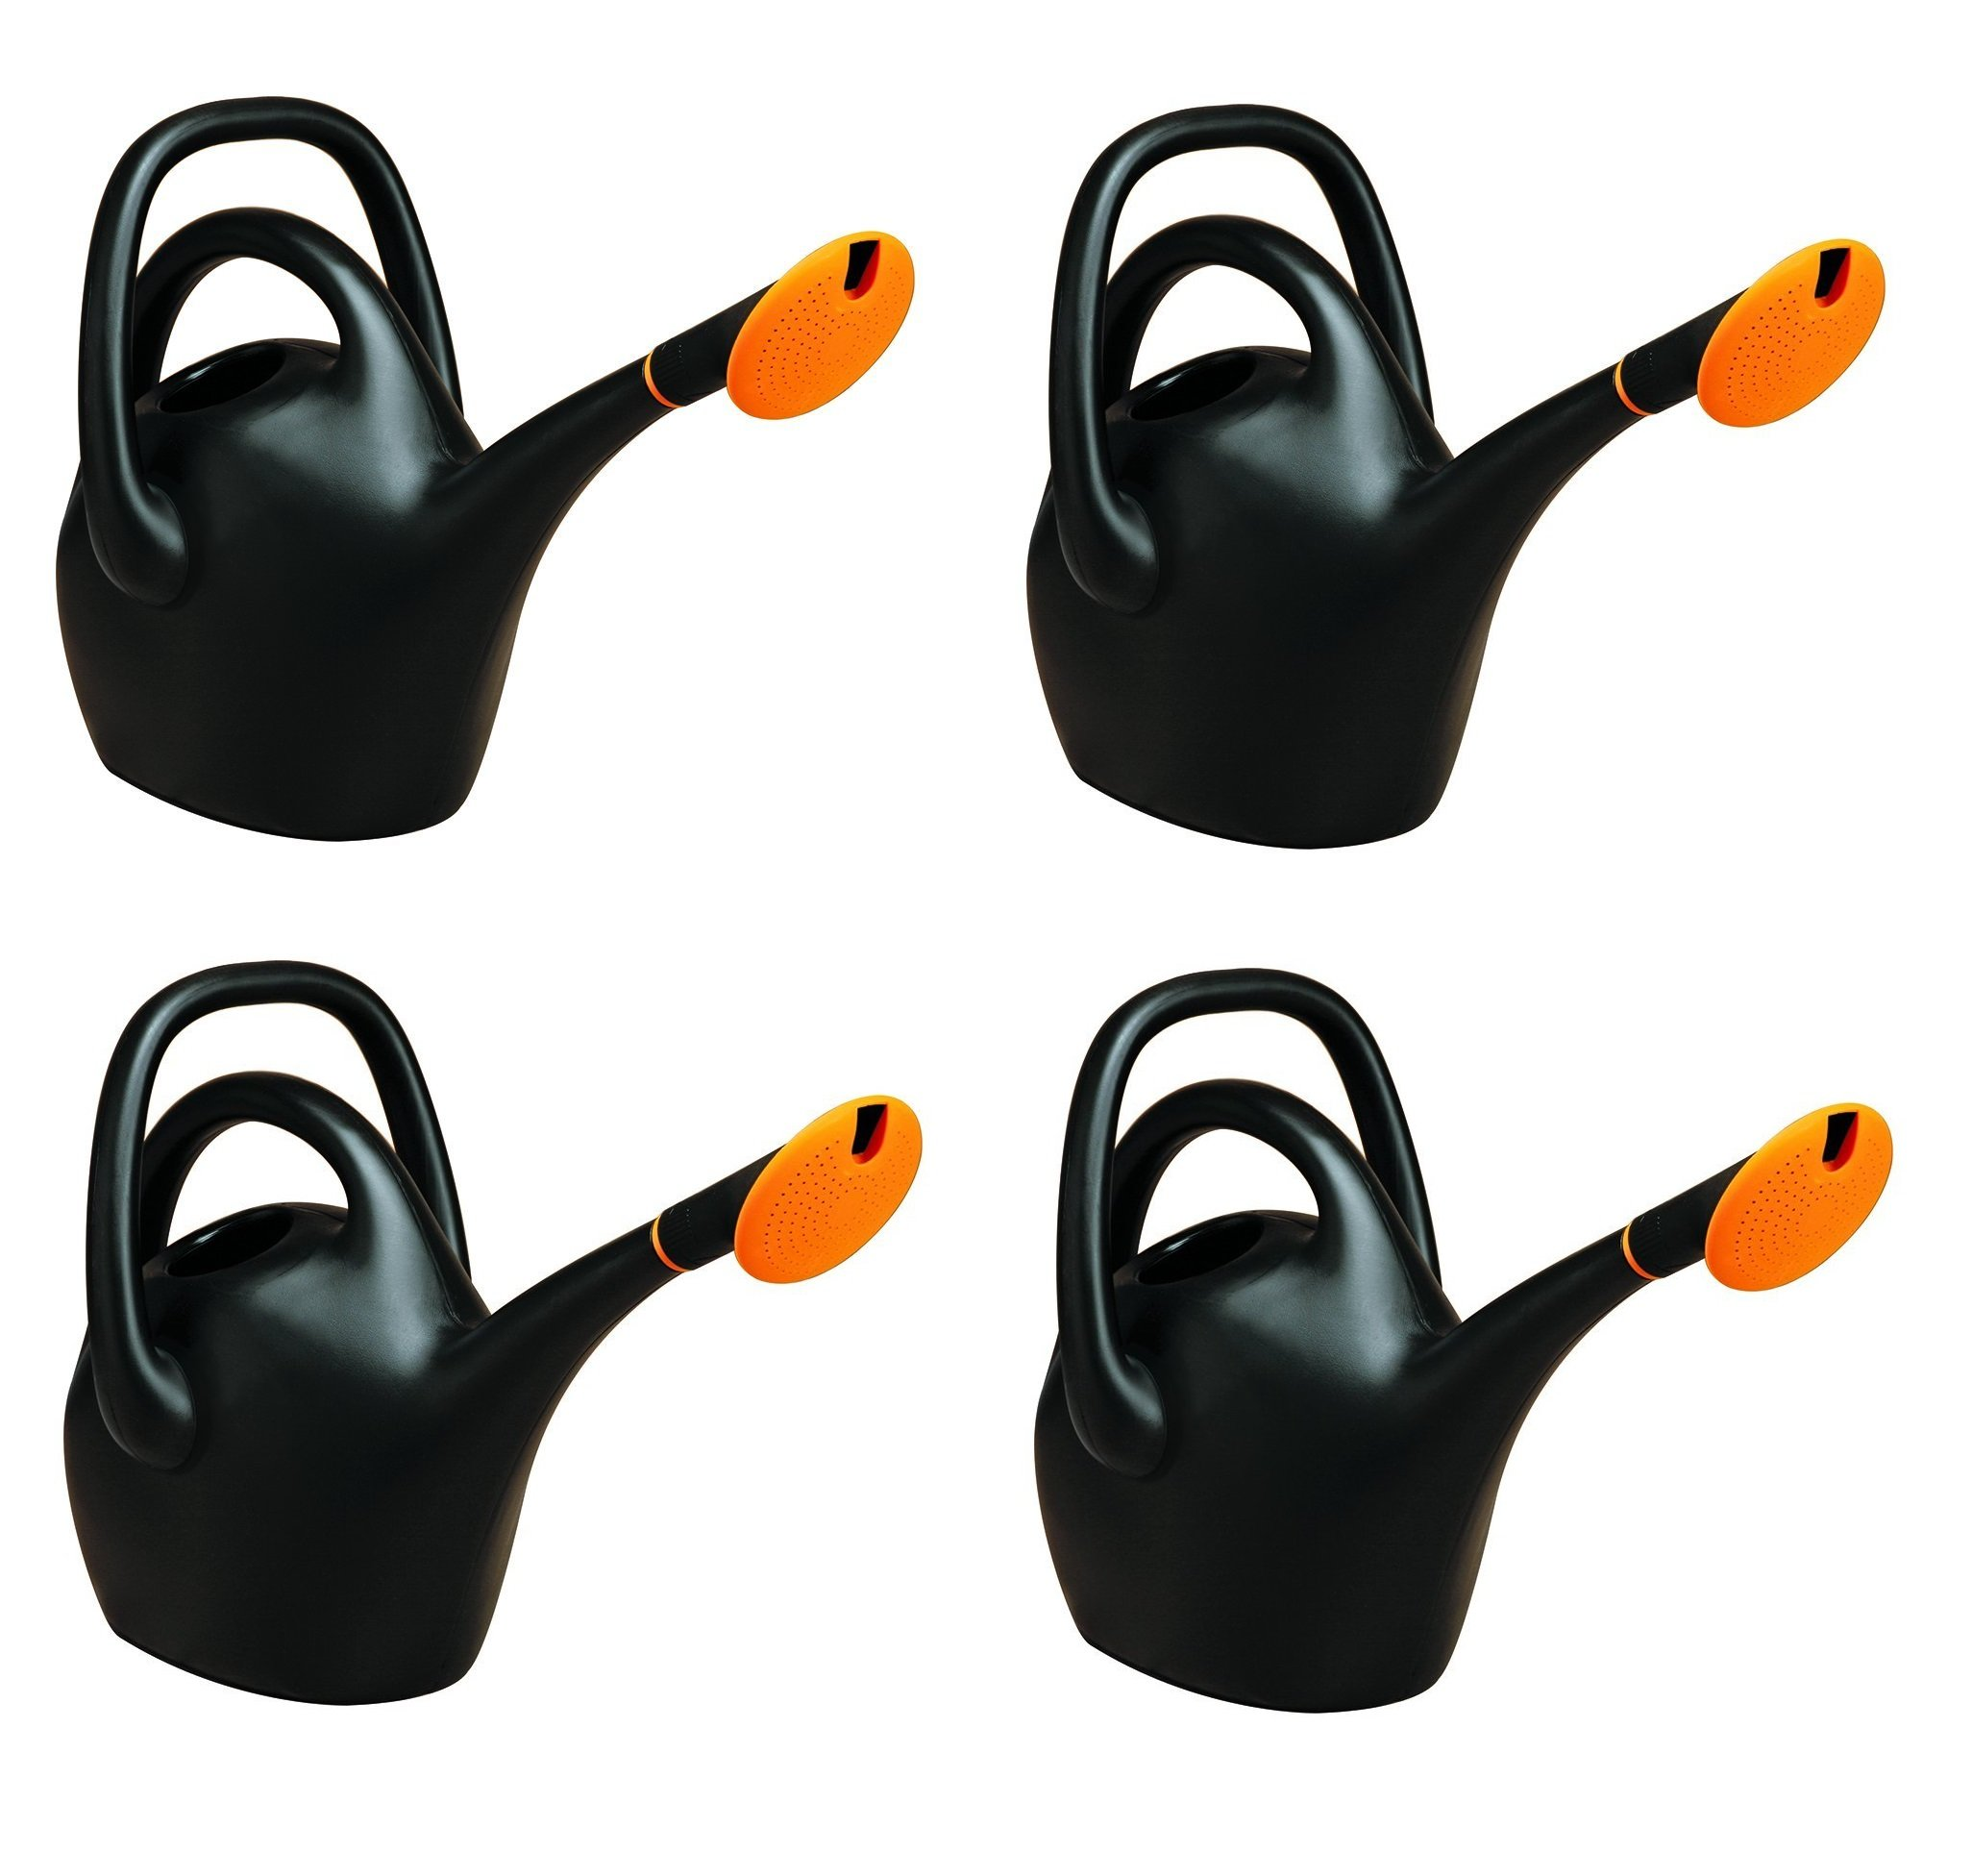 Bloem Easy Pour Watering Can, 2.6 Gallon, Black (20-47287CP) (4-pack)